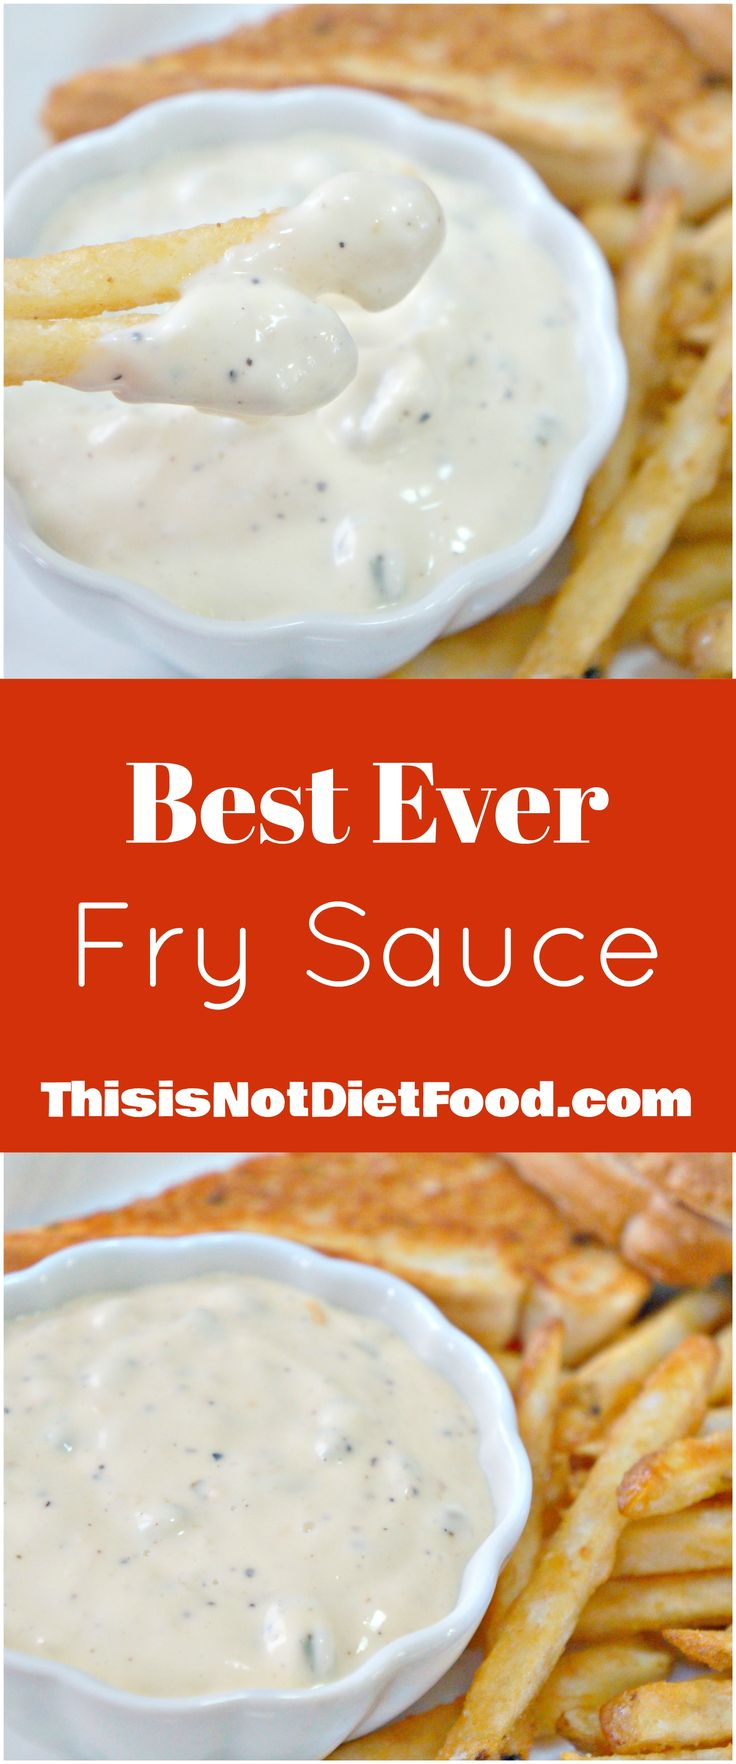 French Fry Dipping Sauce. Mayo and coleslaw dressing come together with other ingredients to make this tasty sauce. Easy sauce recipe.